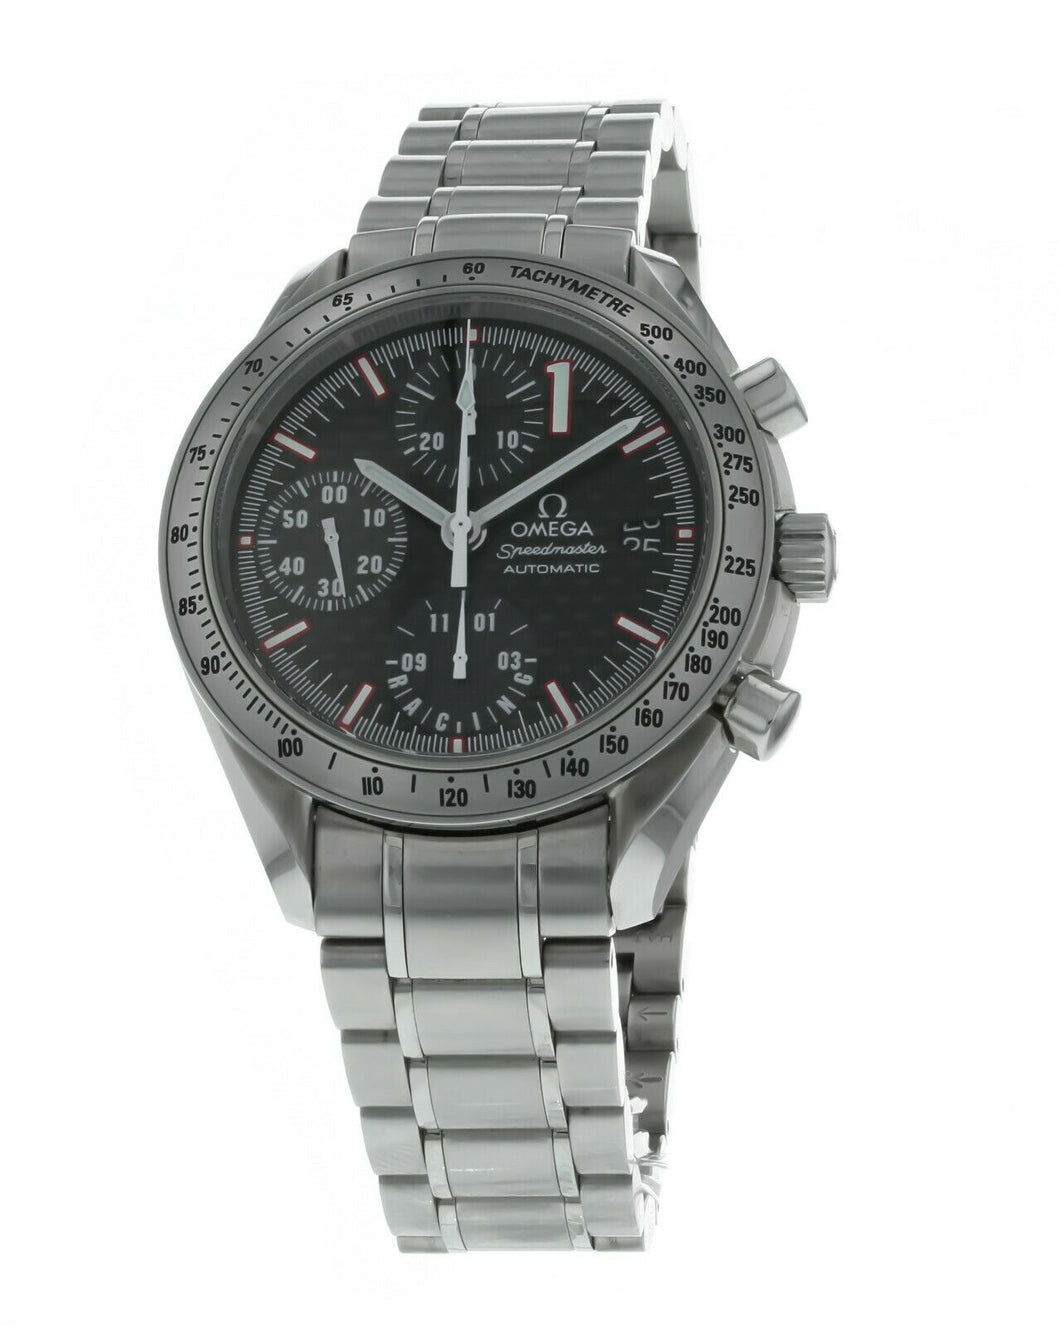 Omega Speedmaster Date Michael Schumacher Limited Edition Men's Watch 3519.50.00